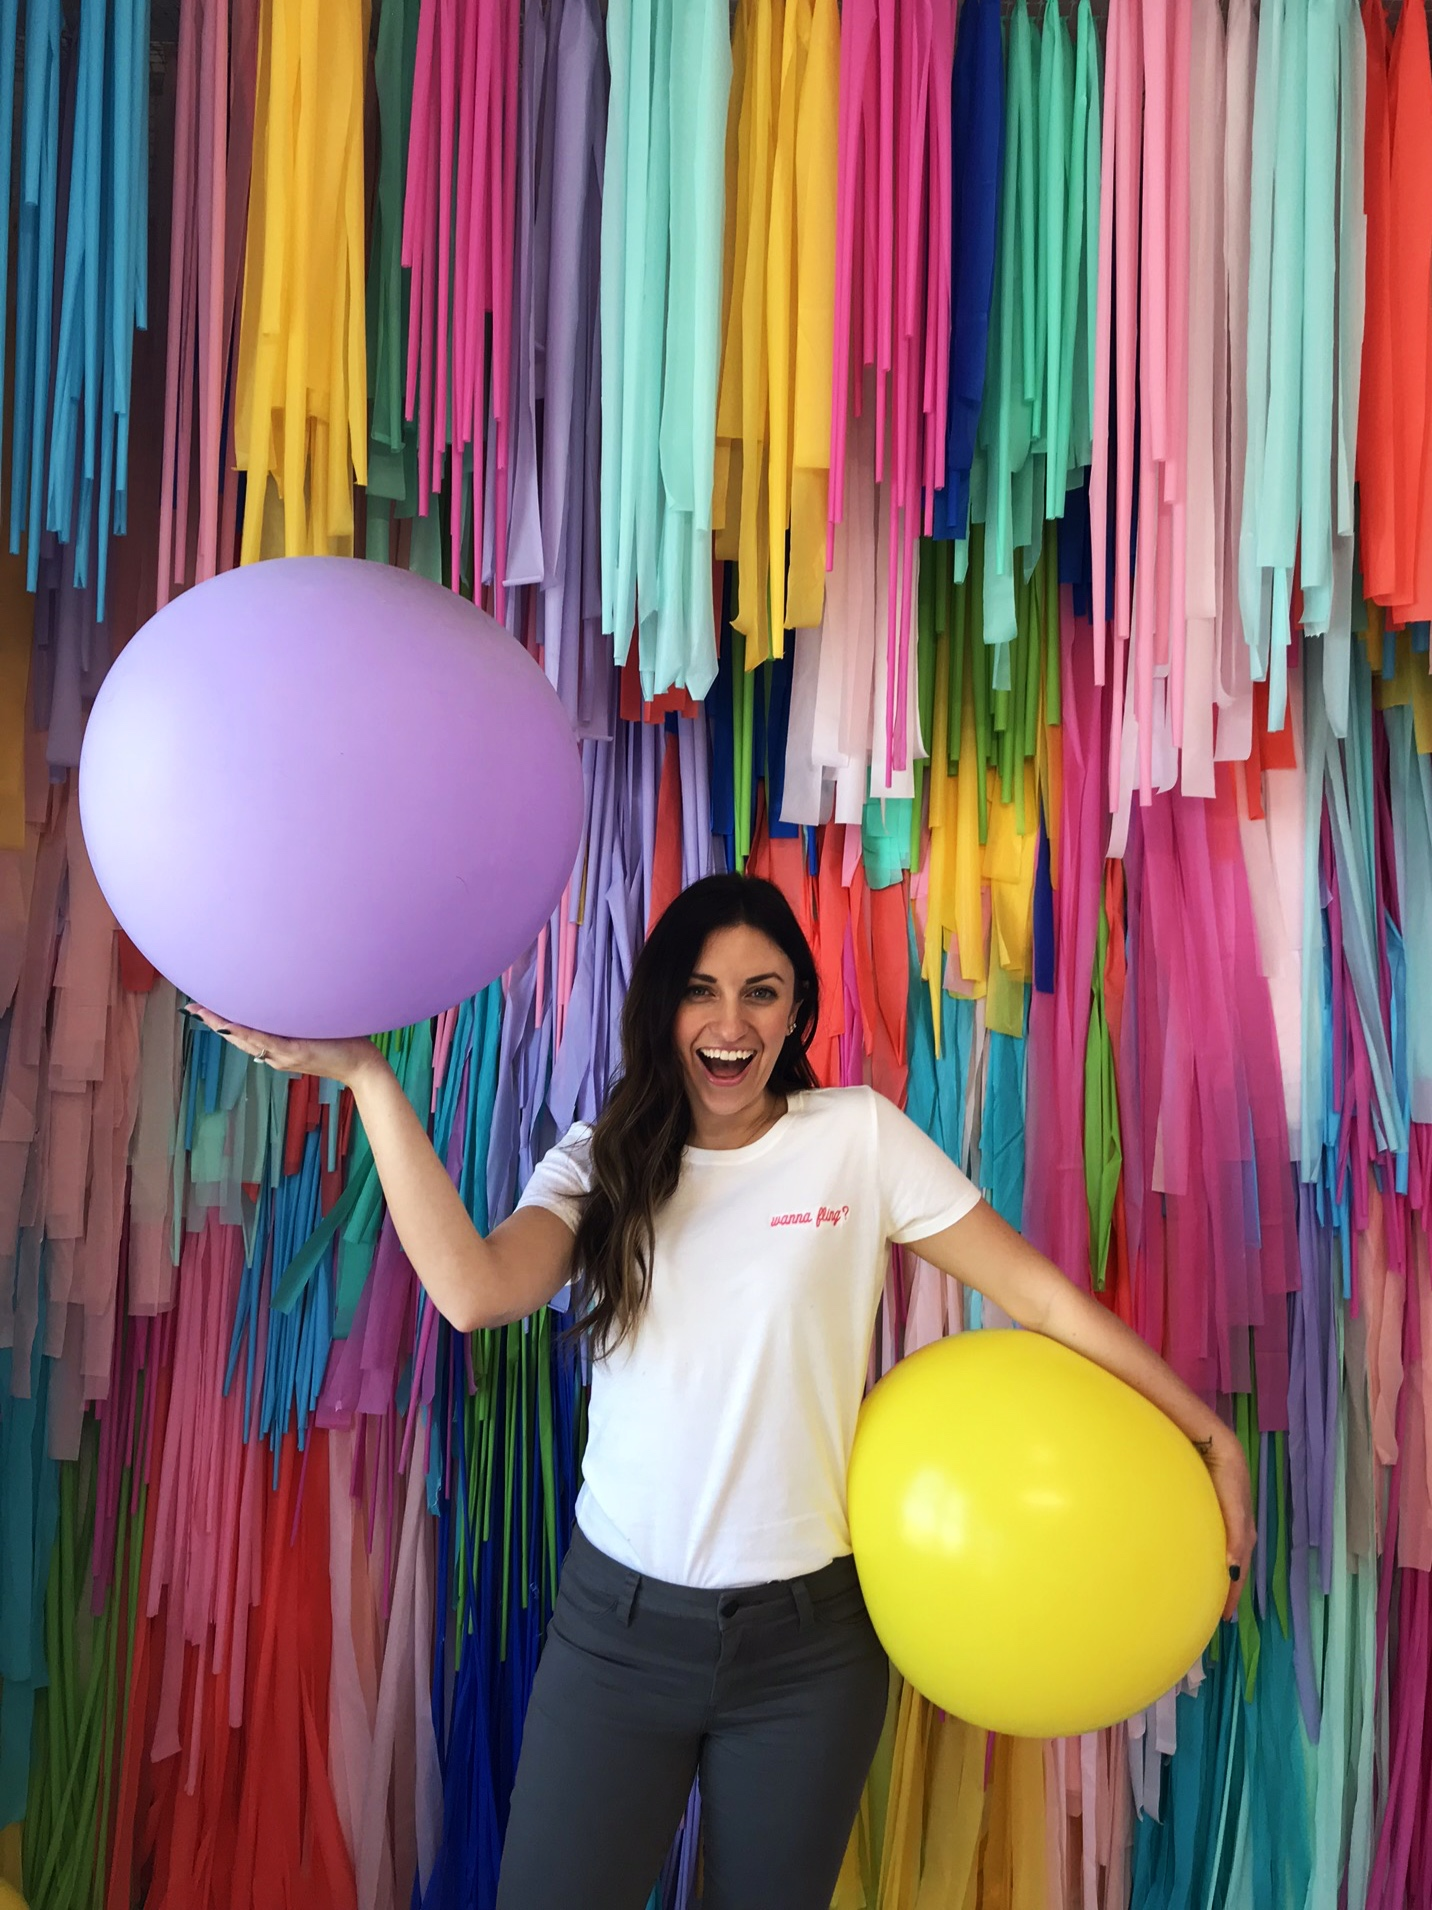 we're growing! - Do you love balloons and confetti just as much as us? We're looking for the perfect people to join our party in various destination cities. Click the button below and tell us how you plan to bring the fun as our Personal Party Concierge!